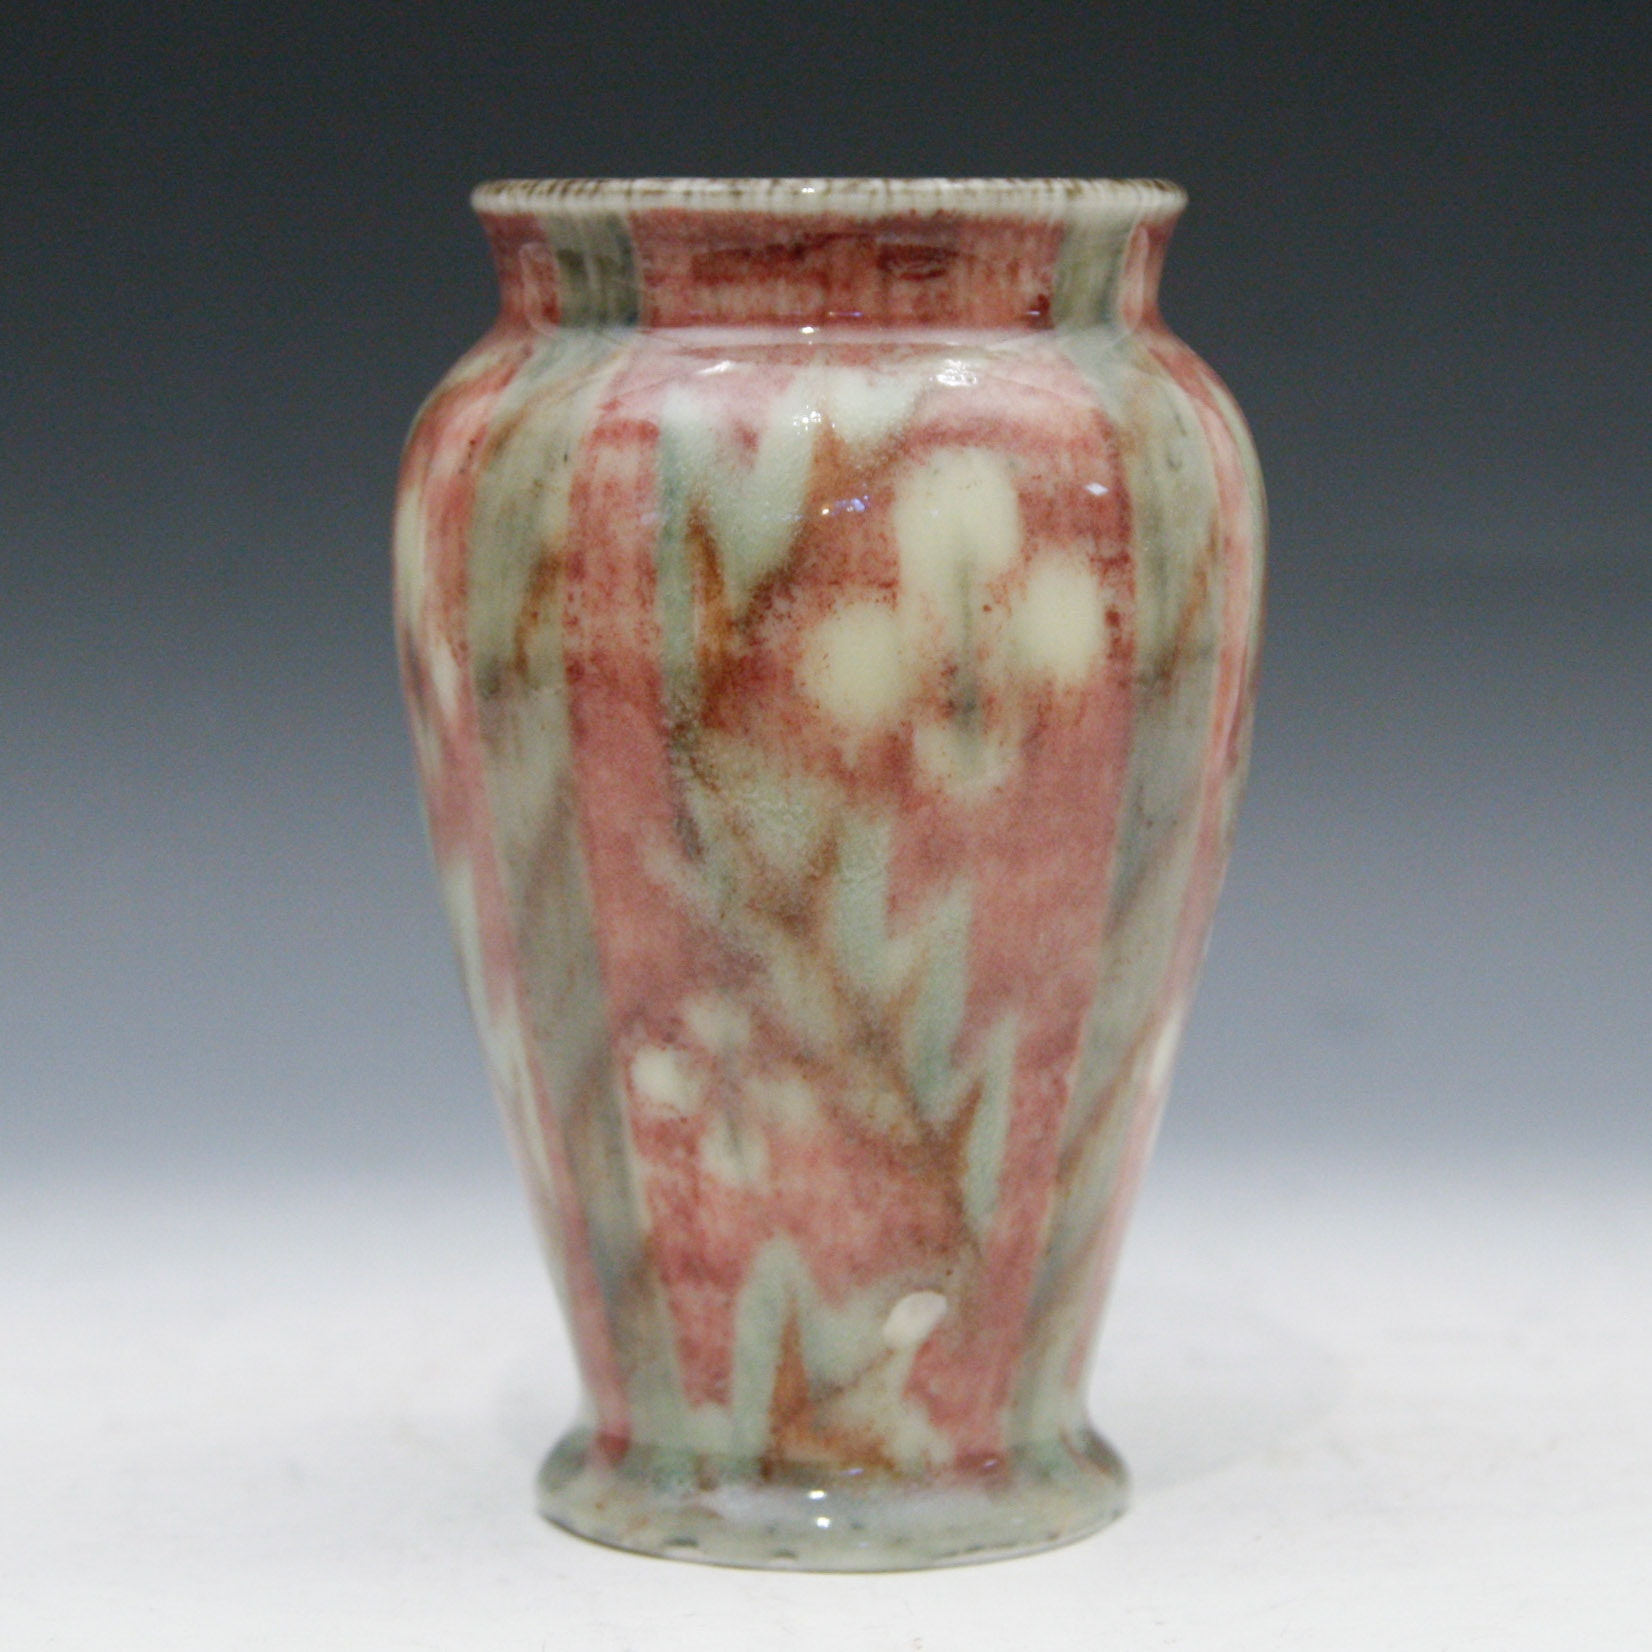 1931 Signed Rookwood Pottery Vase